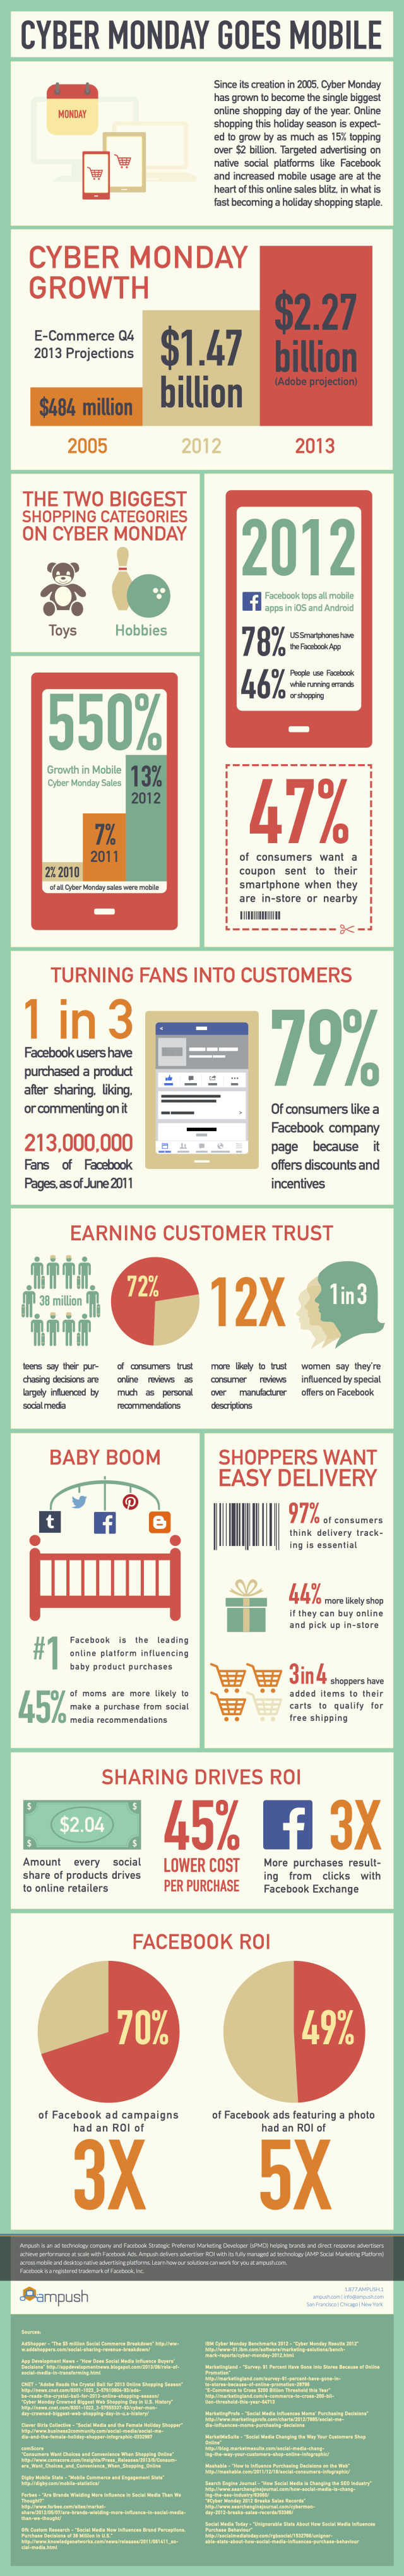 Cyber Monday report, mobile infographic